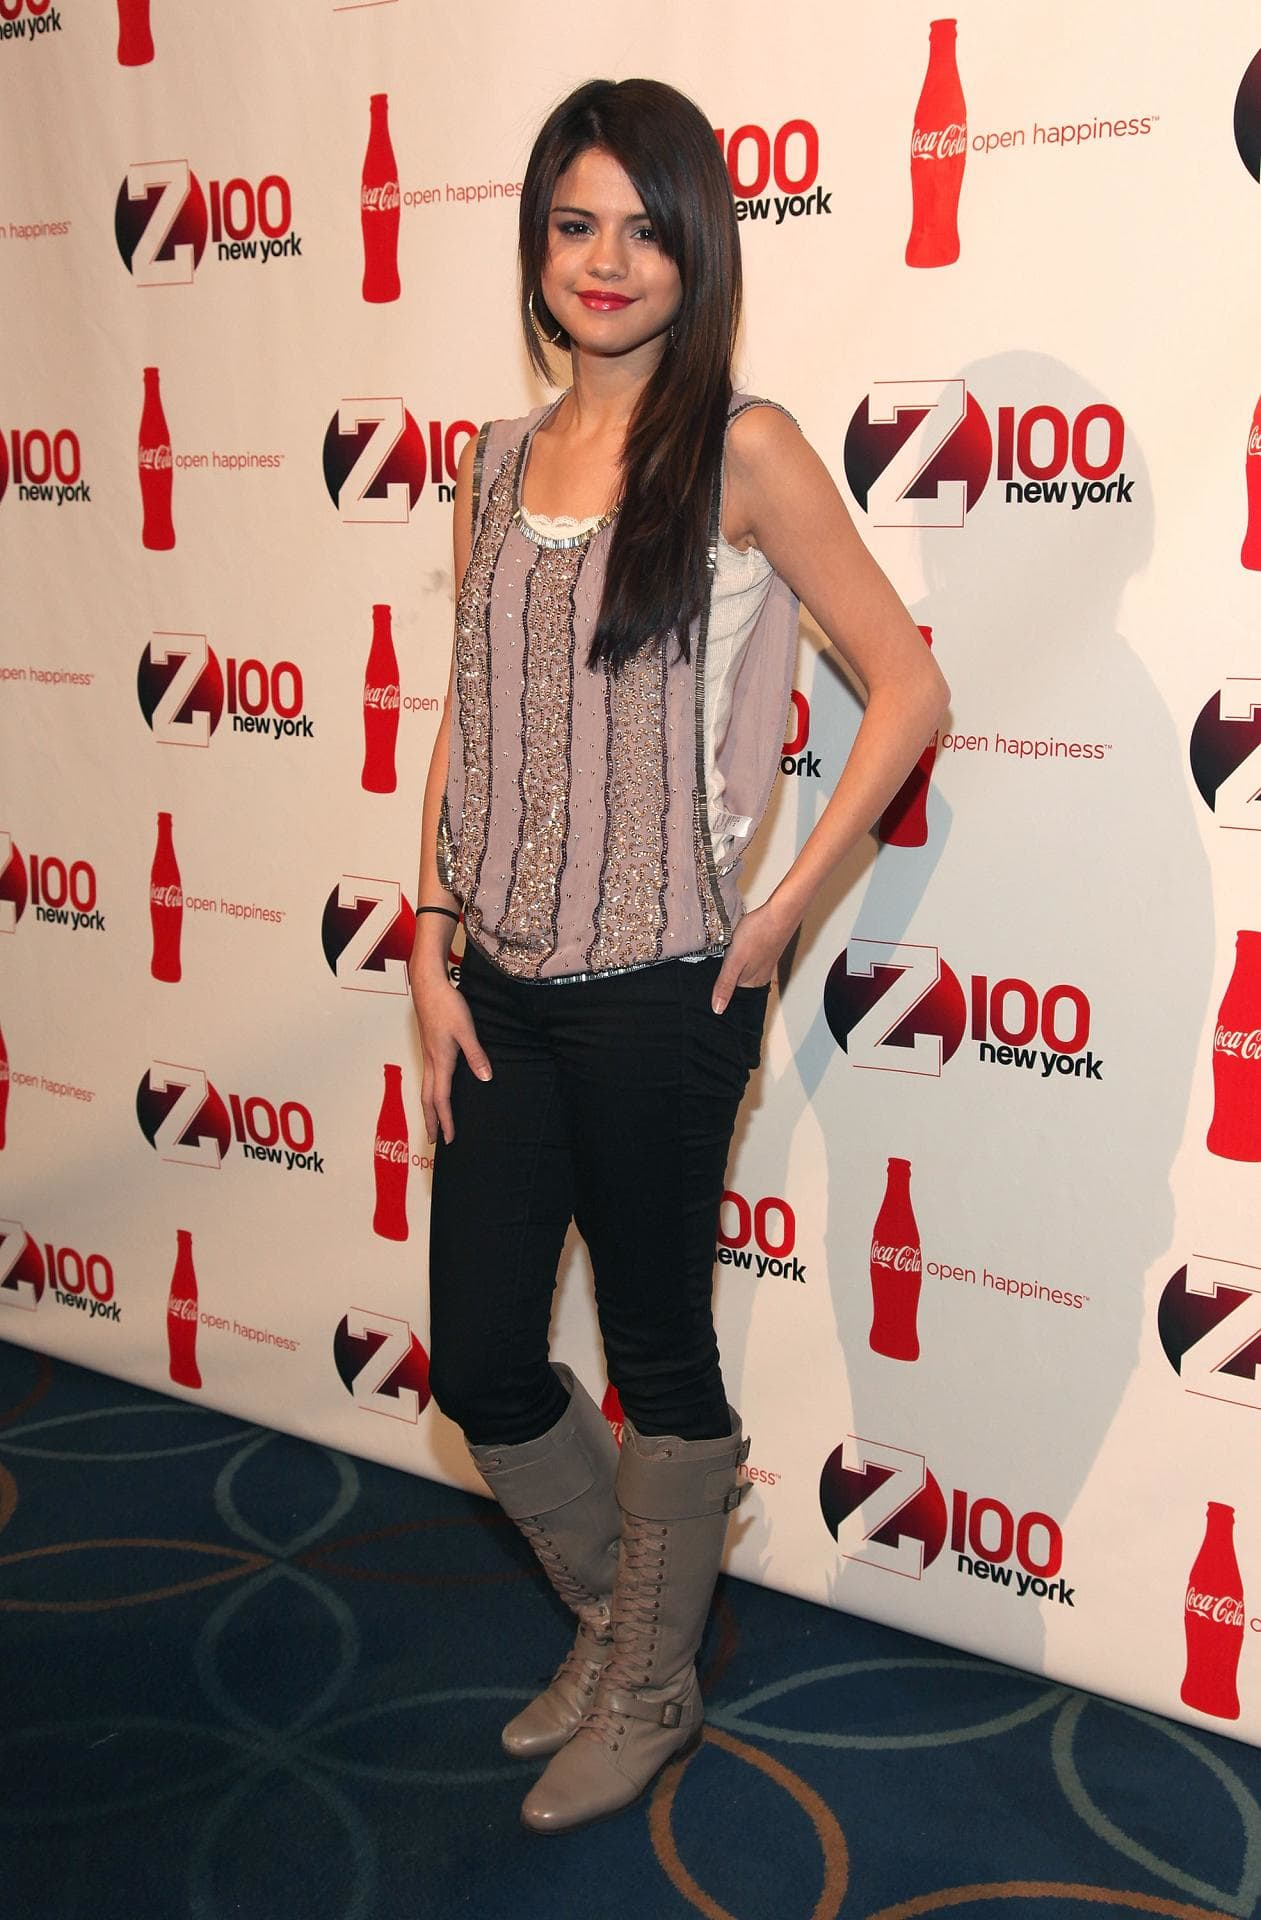 Selena gomez pictured at the disney channel games 2008 red carpet at epcot center in orlando florida on may 2, 2008